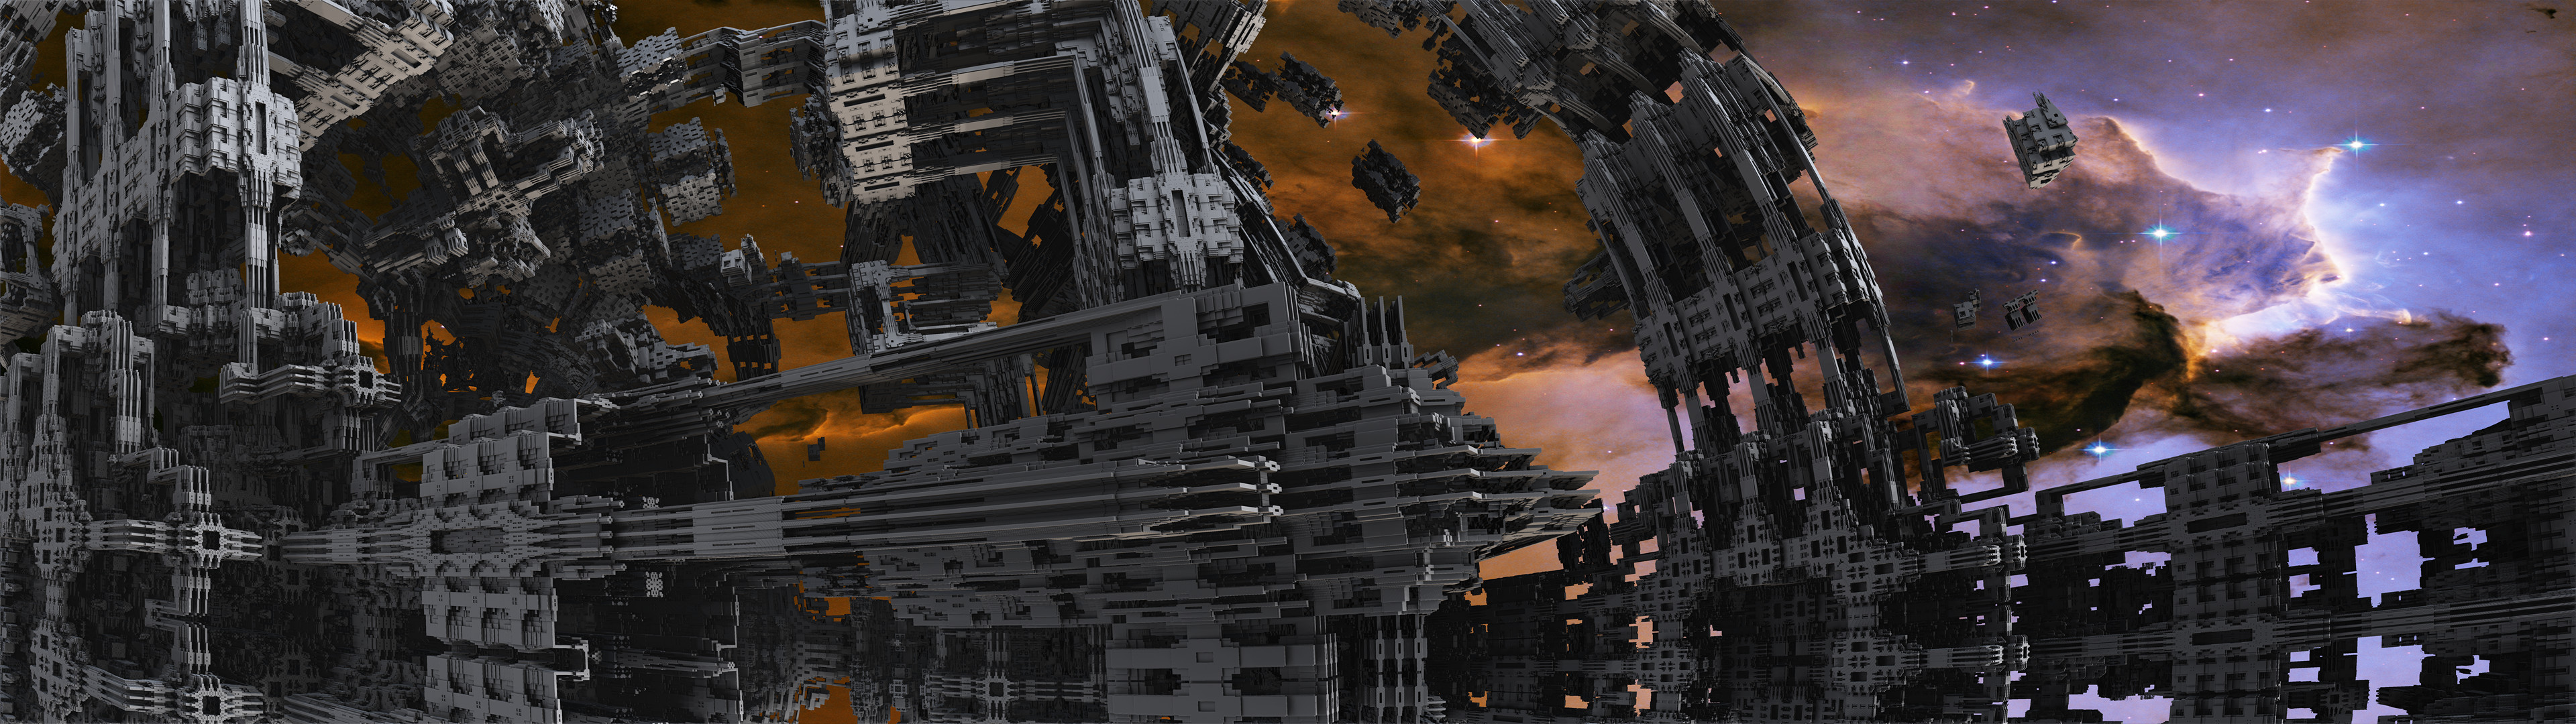 Dual Display Fractal Sci Fi By Grahamsym On Deviantart